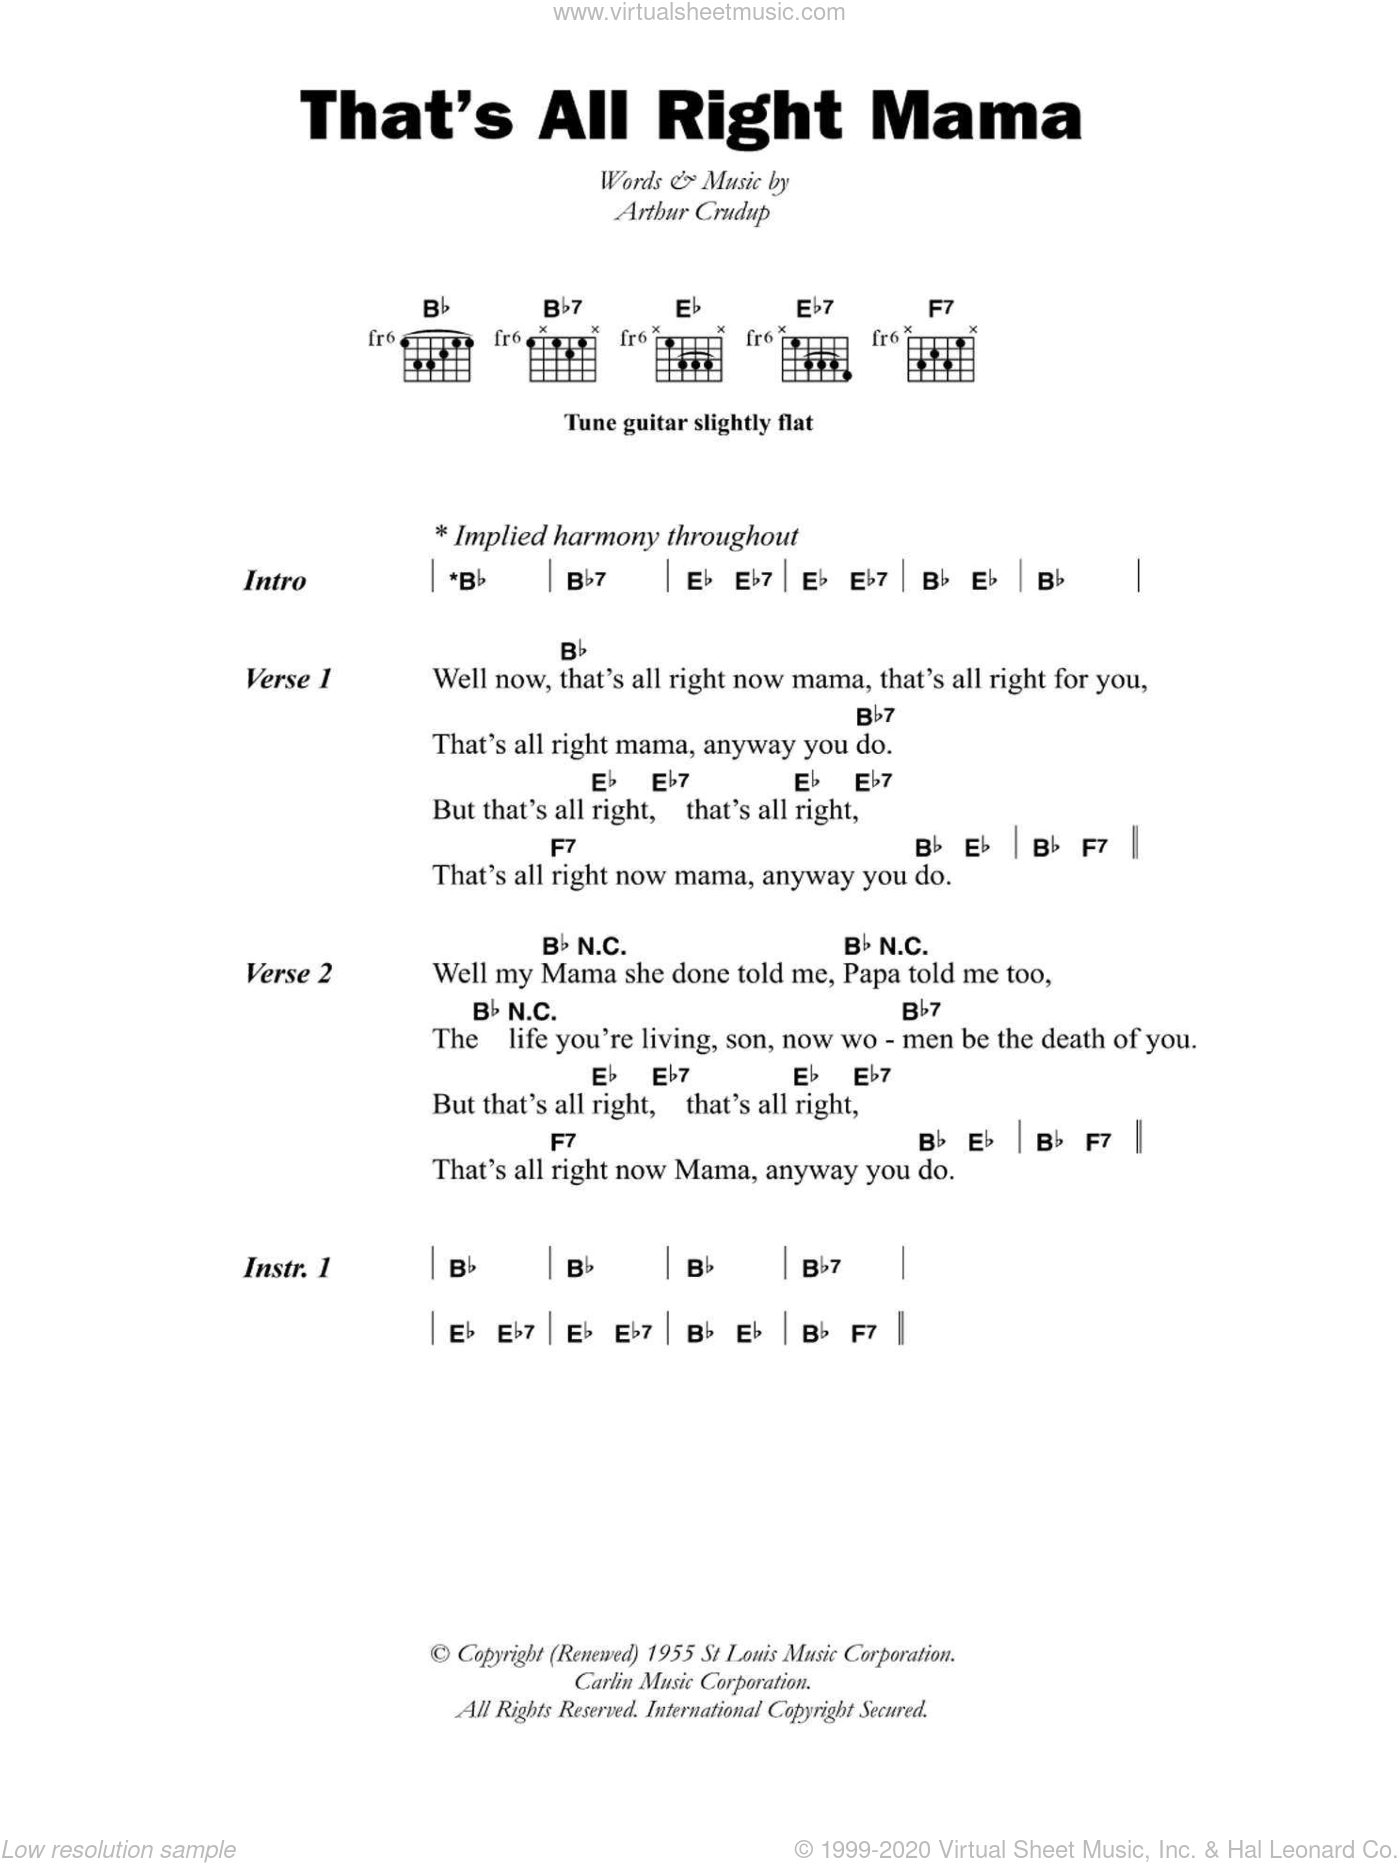 That's All Right Mama sheet music for guitar (chords) by Arthur Crudup